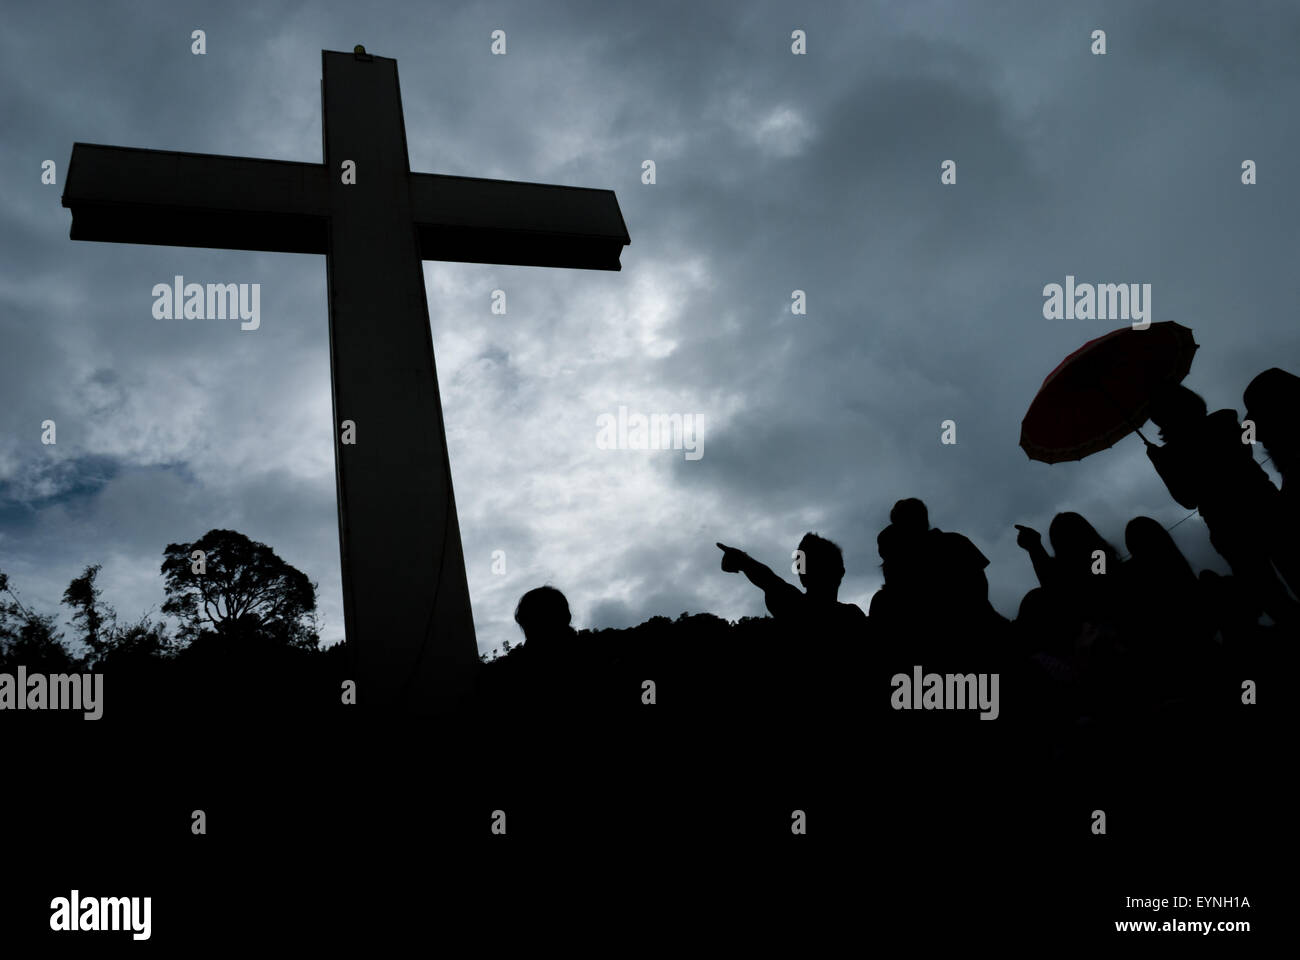 Giant Christian Cross and people silhouetted against the sky on a rainy day. - Stock Image